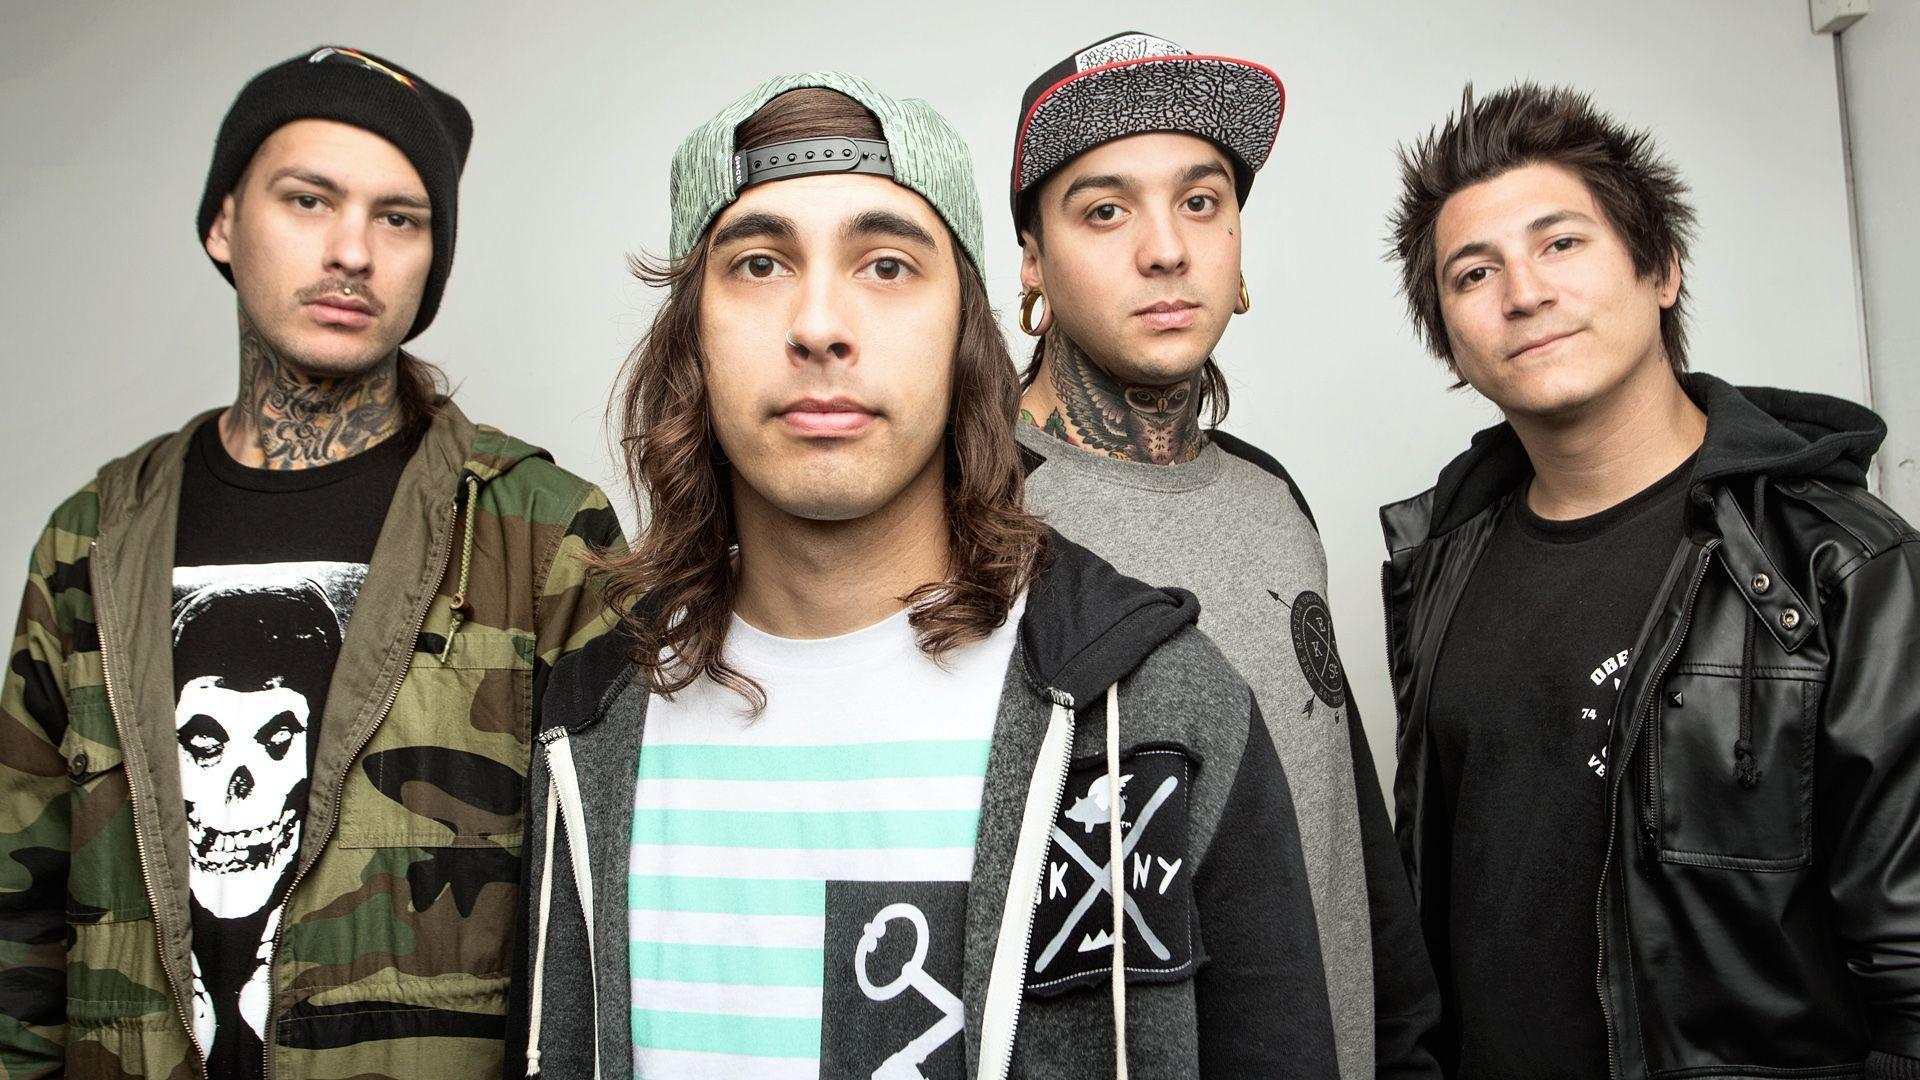 Pierce the Veil | Music fanart | fanart.tv